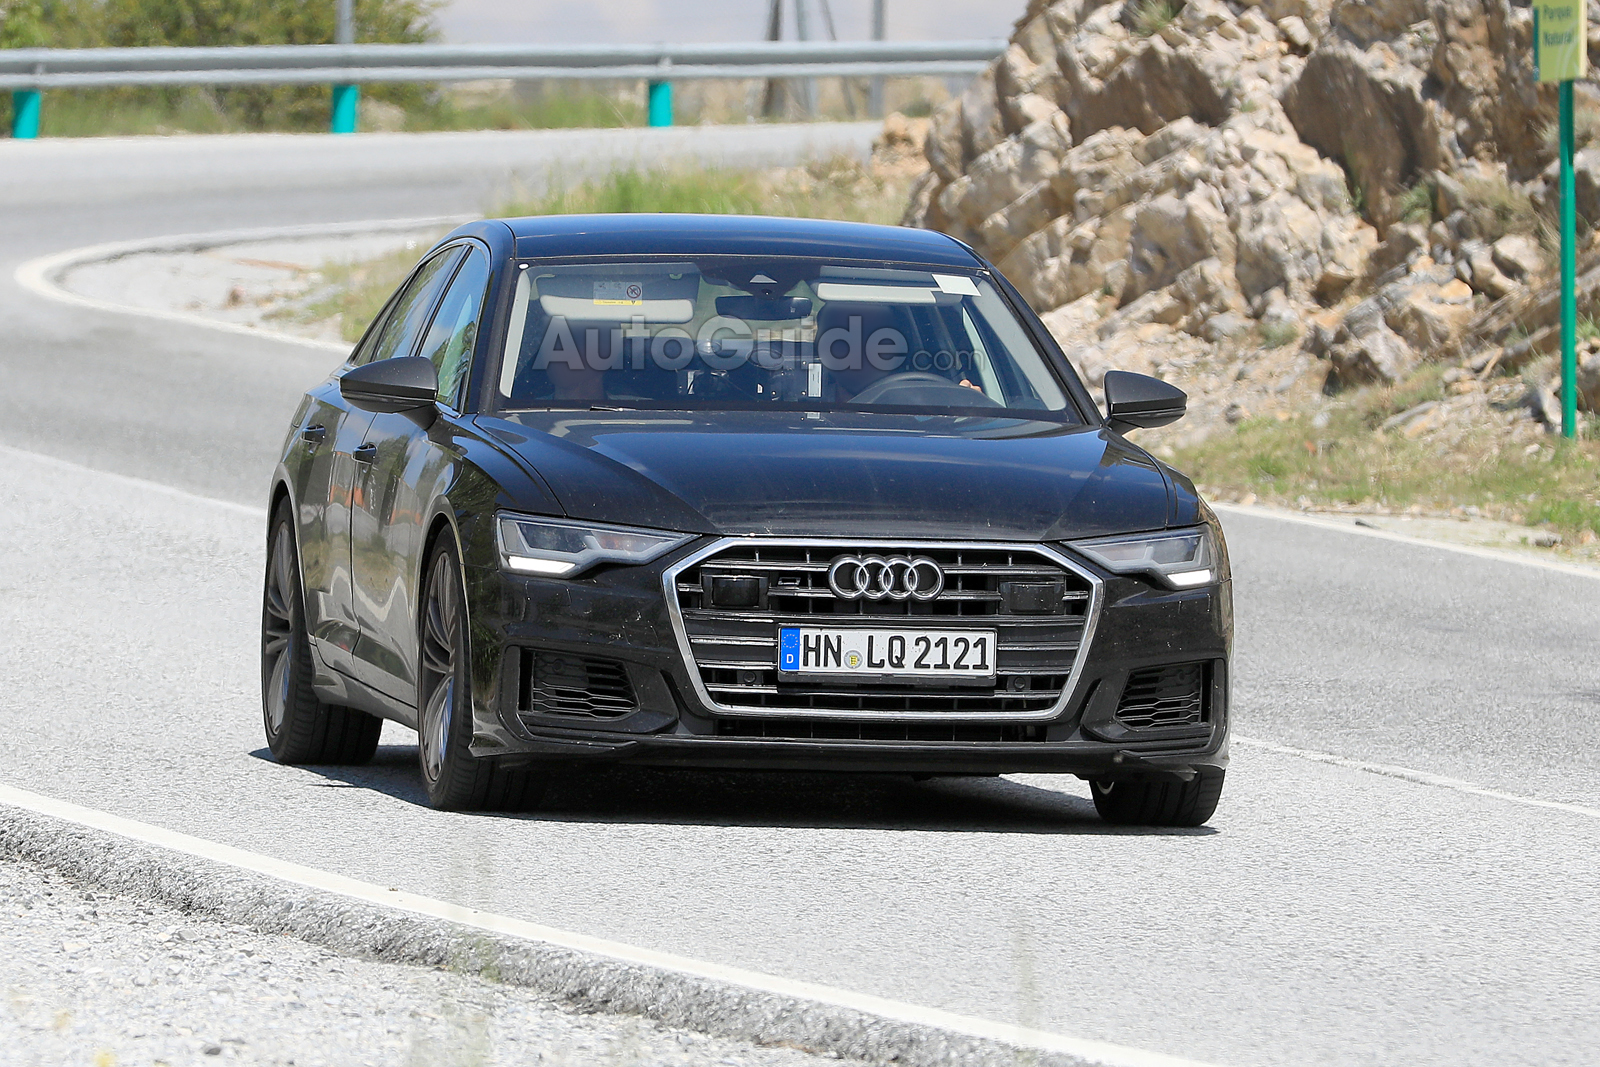 2019 Audi S6 Spied With Actual, Real Exhaust Tips » AutoGuide.com Black Audi A Exhaust Tips on audi rs6 exhaust tips, cadillac sts exhaust tips, dodge ram exhaust tips, audi rs7 exhaust tips, hyundai genesis coupe exhaust tips, ford ranger exhaust tips, ford fusion exhaust tips, mazda 3 exhaust tips, range rover exhaust tips, vw touareg exhaust tips, mini cooper exhaust tips, honda civic exhaust tips, ford f350 exhaust tips, saab 9-3 exhaust tips, jeep cherokee exhaust tips, infiniti m37 exhaust tips, mercedes s class exhaust tips, ford explorer exhaust tips, vw passat exhaust tips, cadillac xlr exhaust tips,